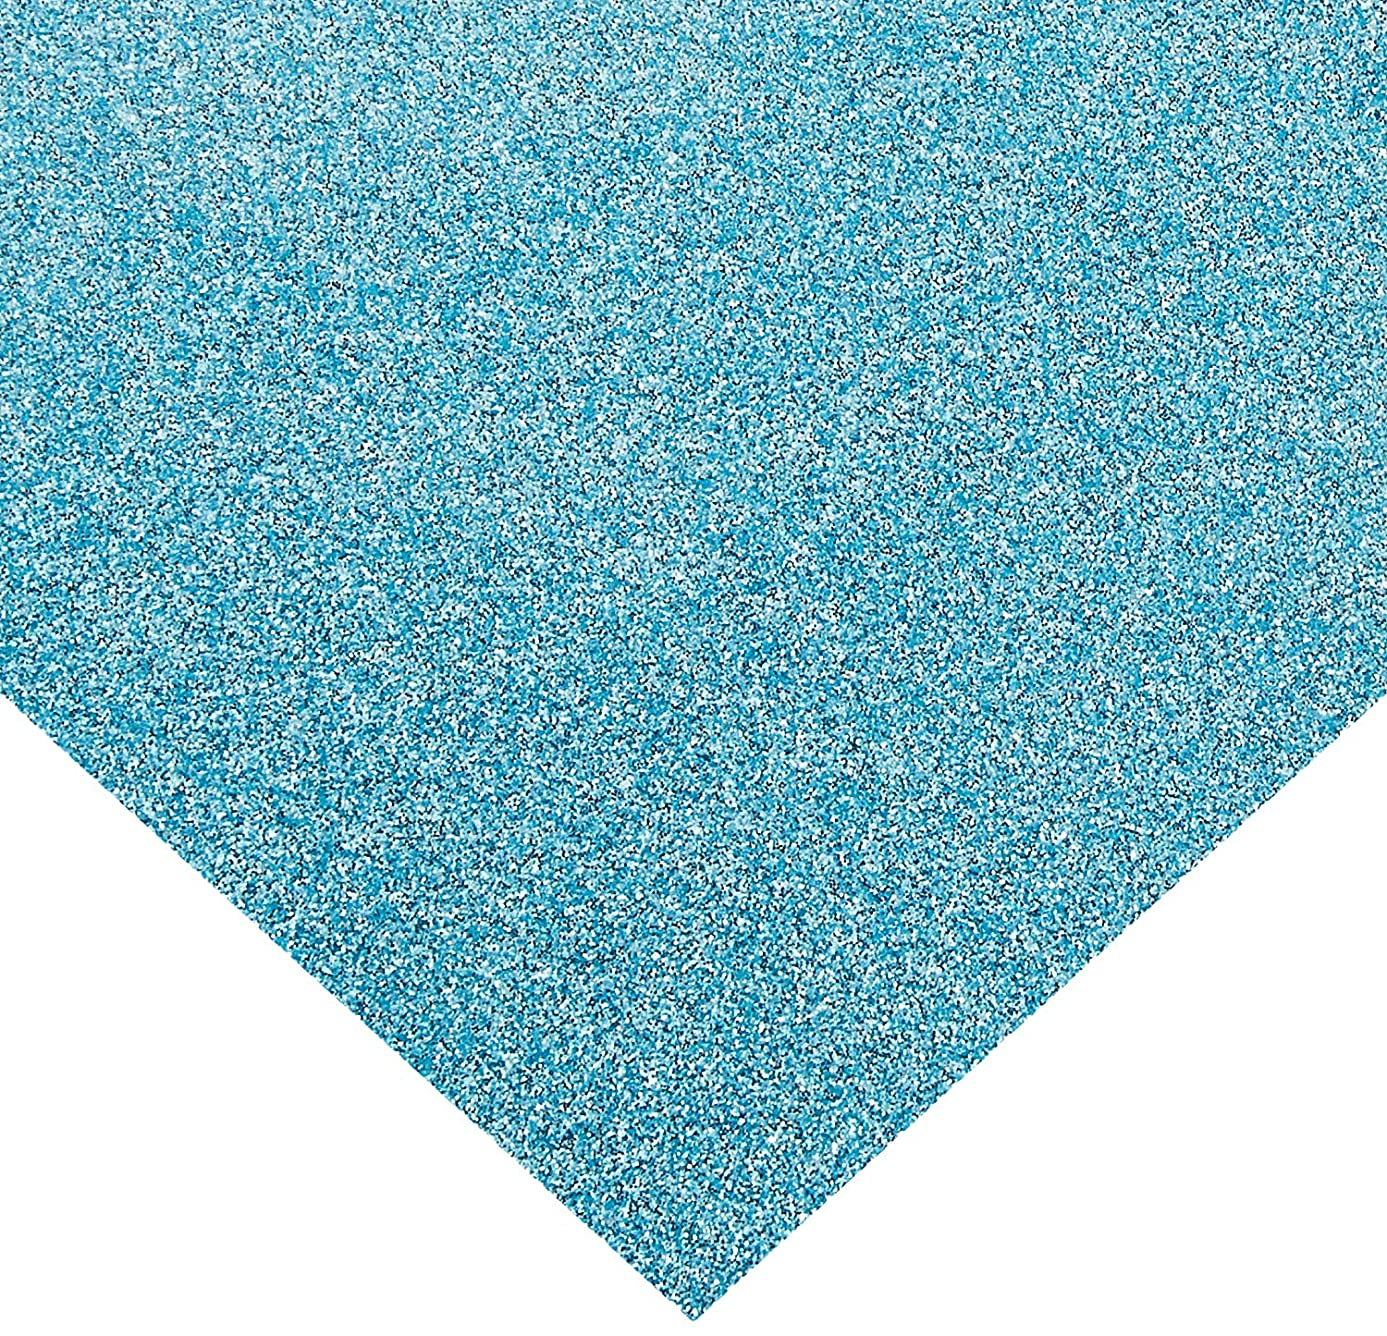 Kimberbell KDKB141 Applique Glitter Sheet Sky Blue